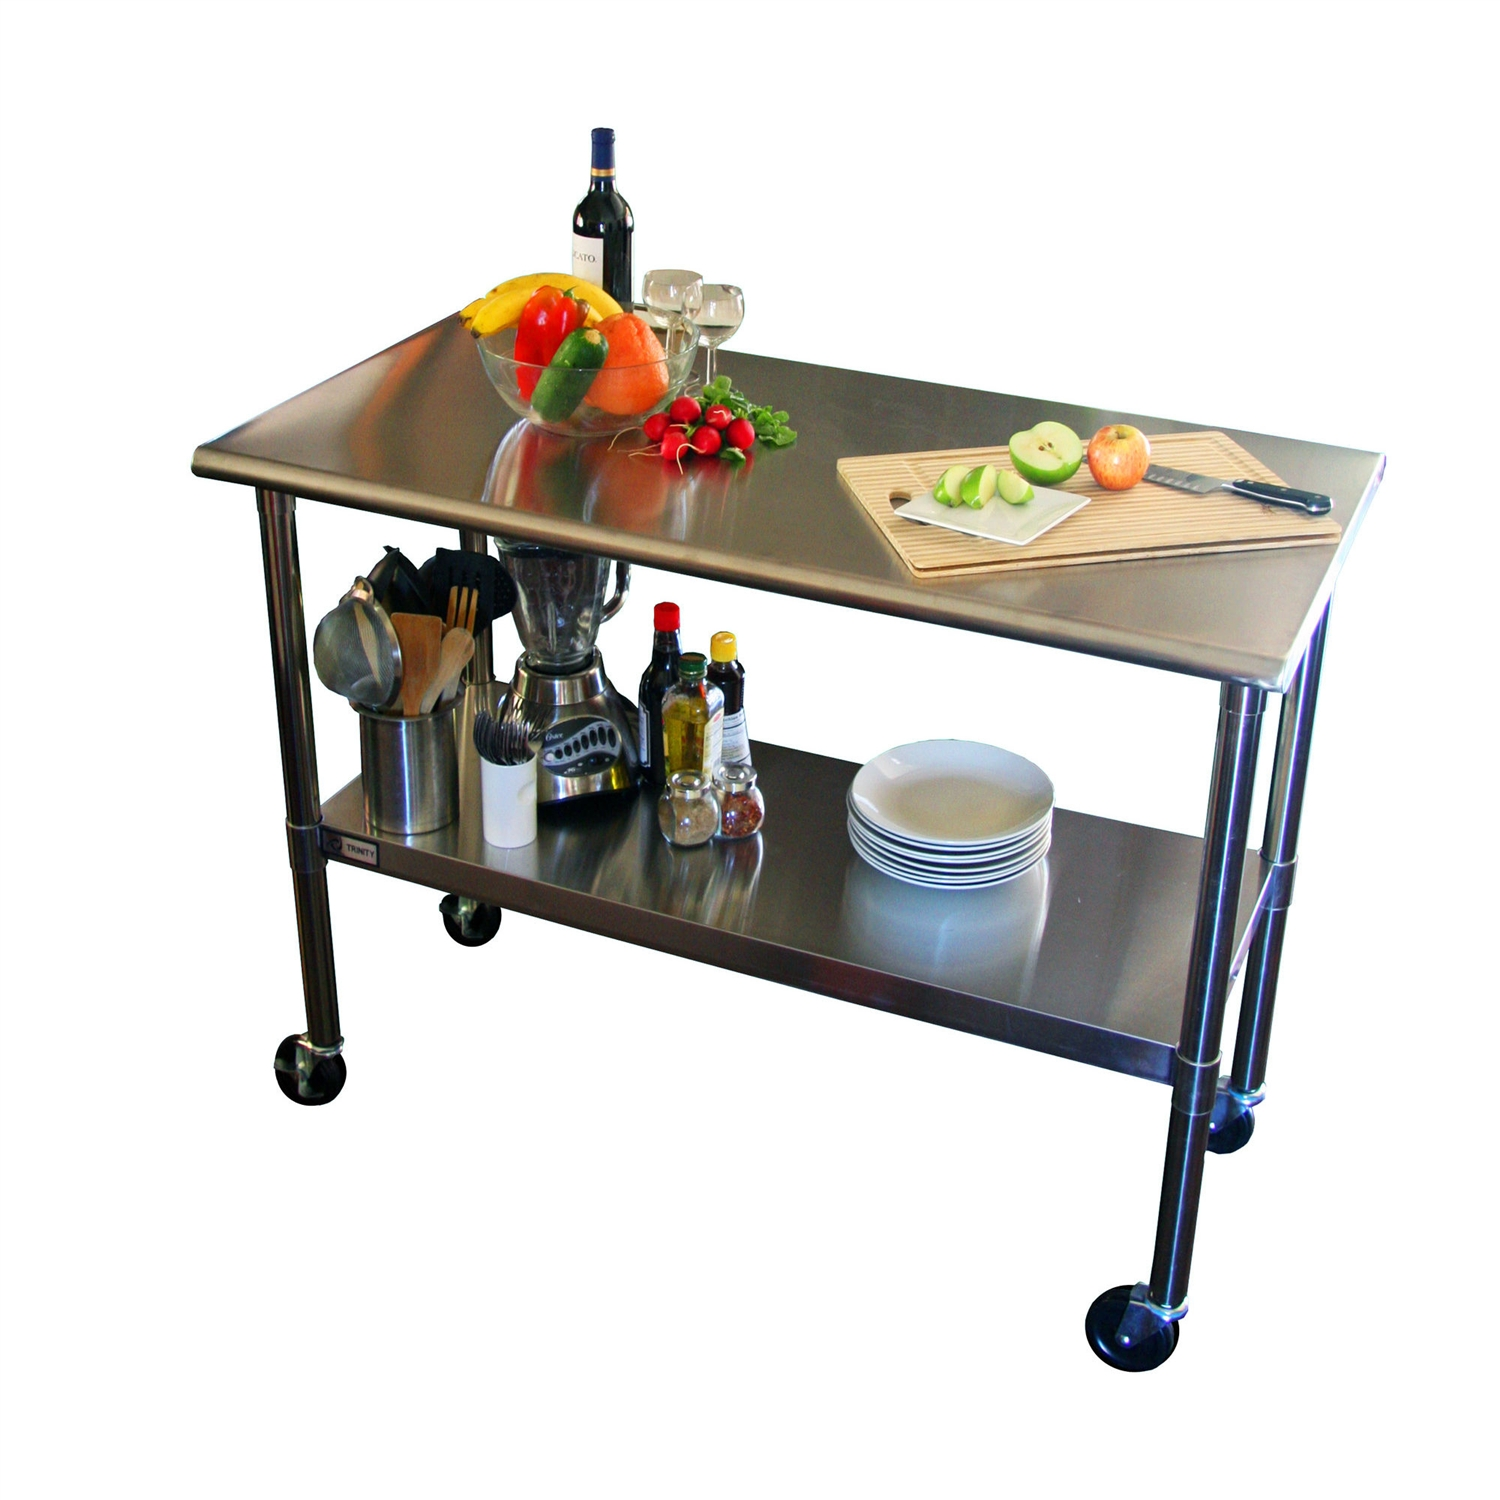 2ft x 4ft stainless steel top kitchen prep table with locking casters wheels - Kitchen Prep Table Stainless Steel